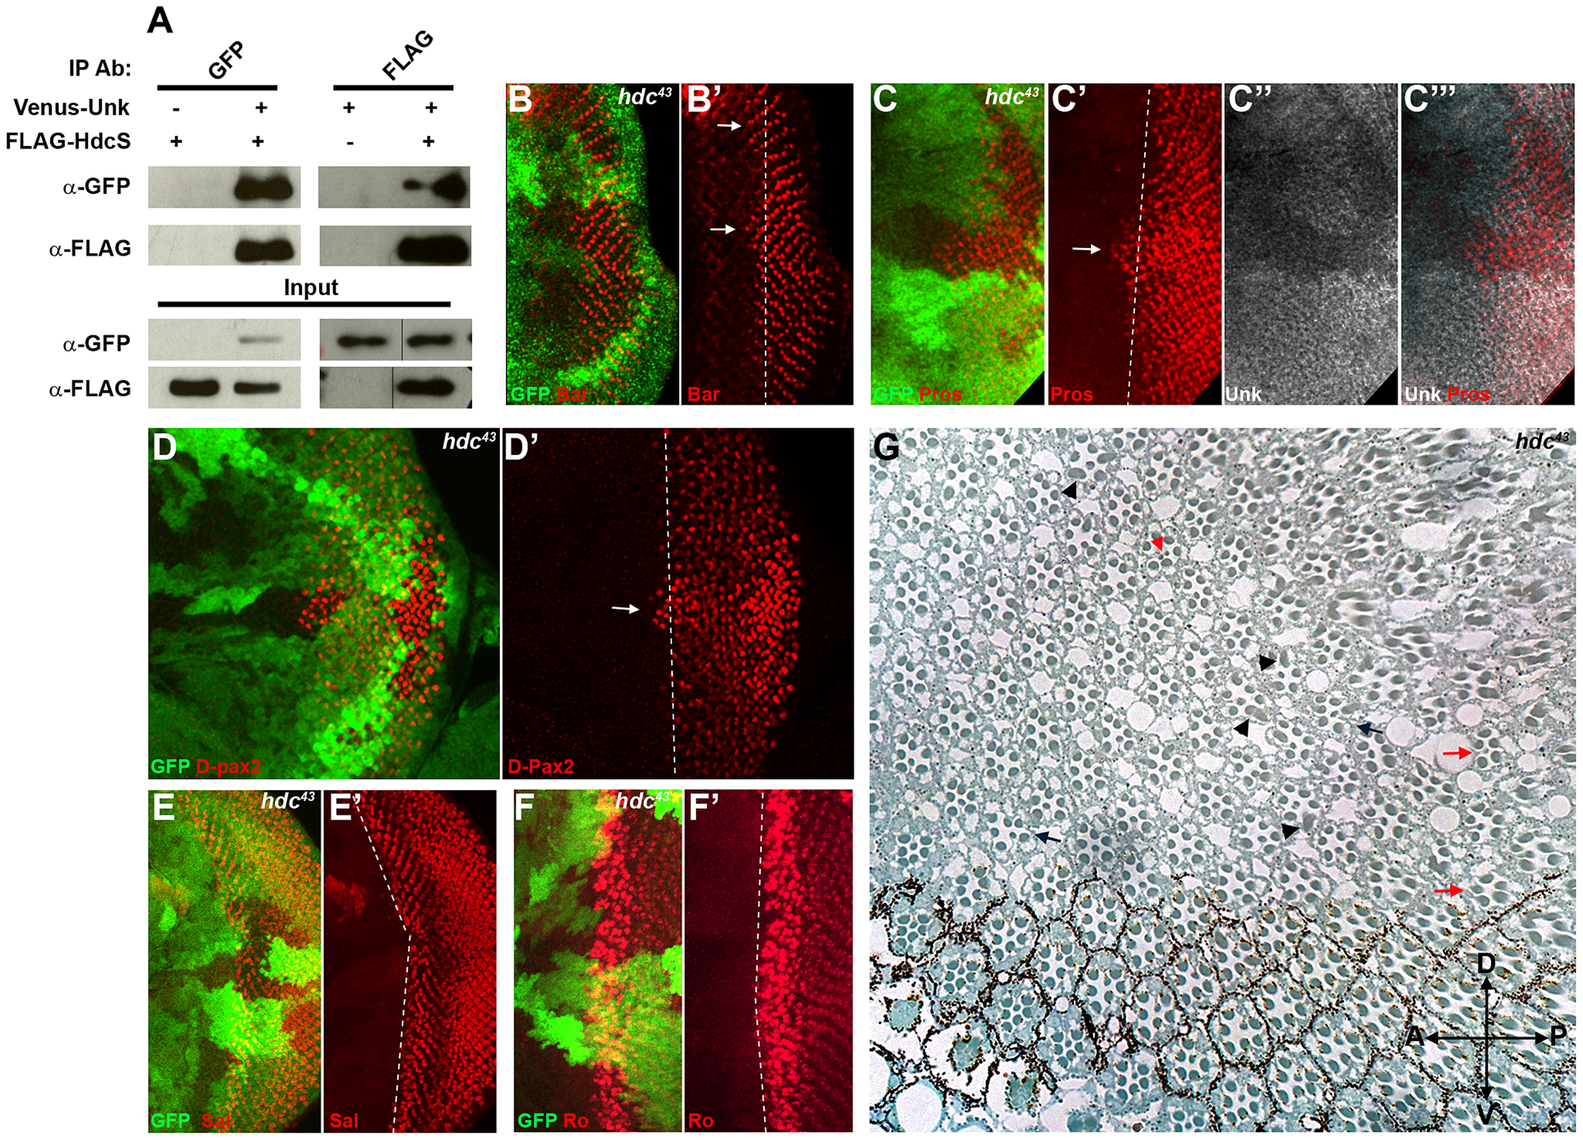 Hdc physically interacts with Unk and negatively regulates neurogenesis.